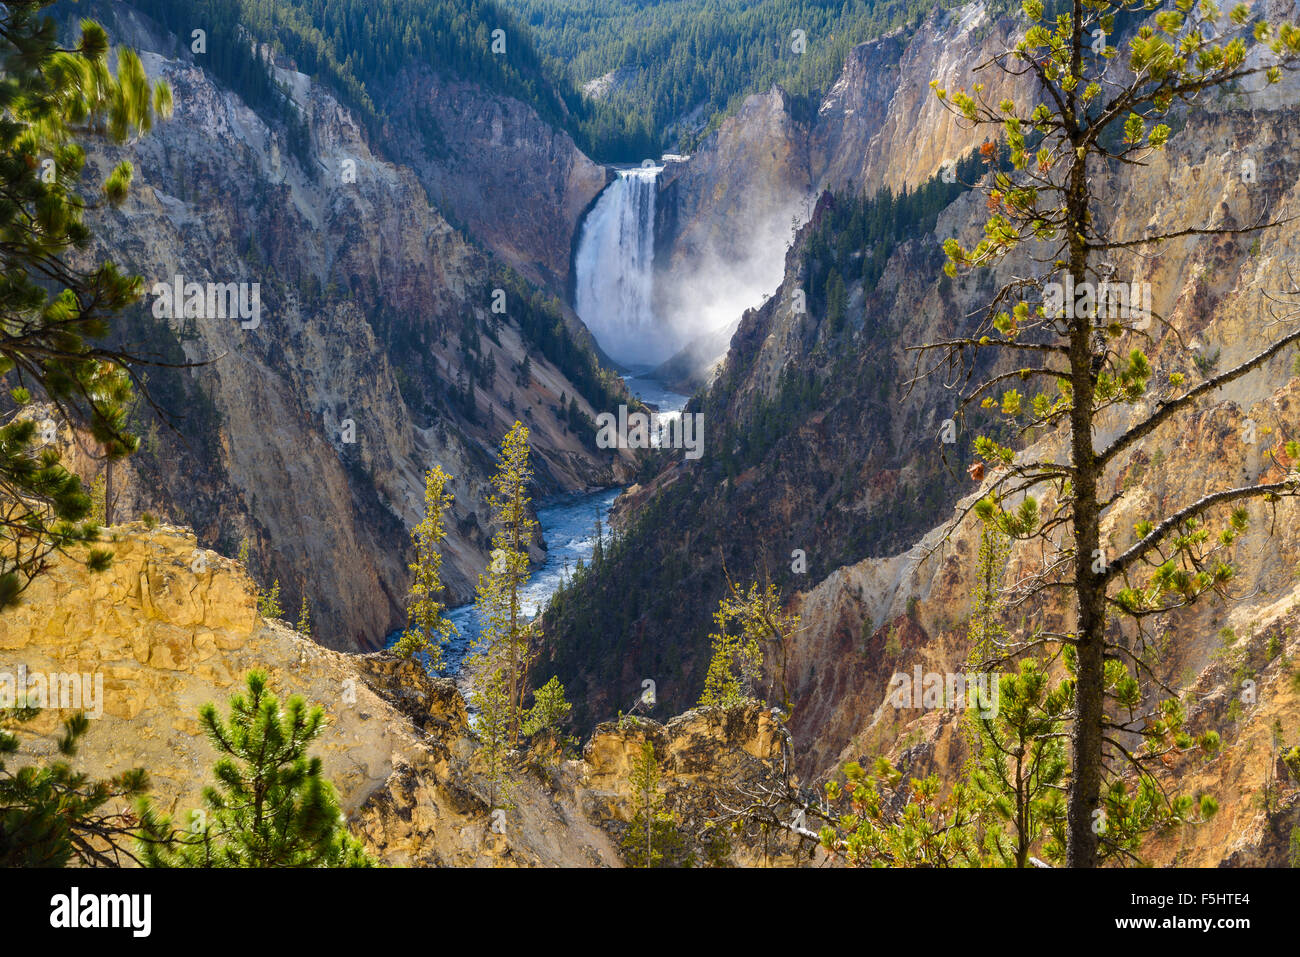 Lower Falls and Grand Canyon of the Yellowstone, from Artists Point, Yellowstone National Park, Wyoming, USA - Stock Image